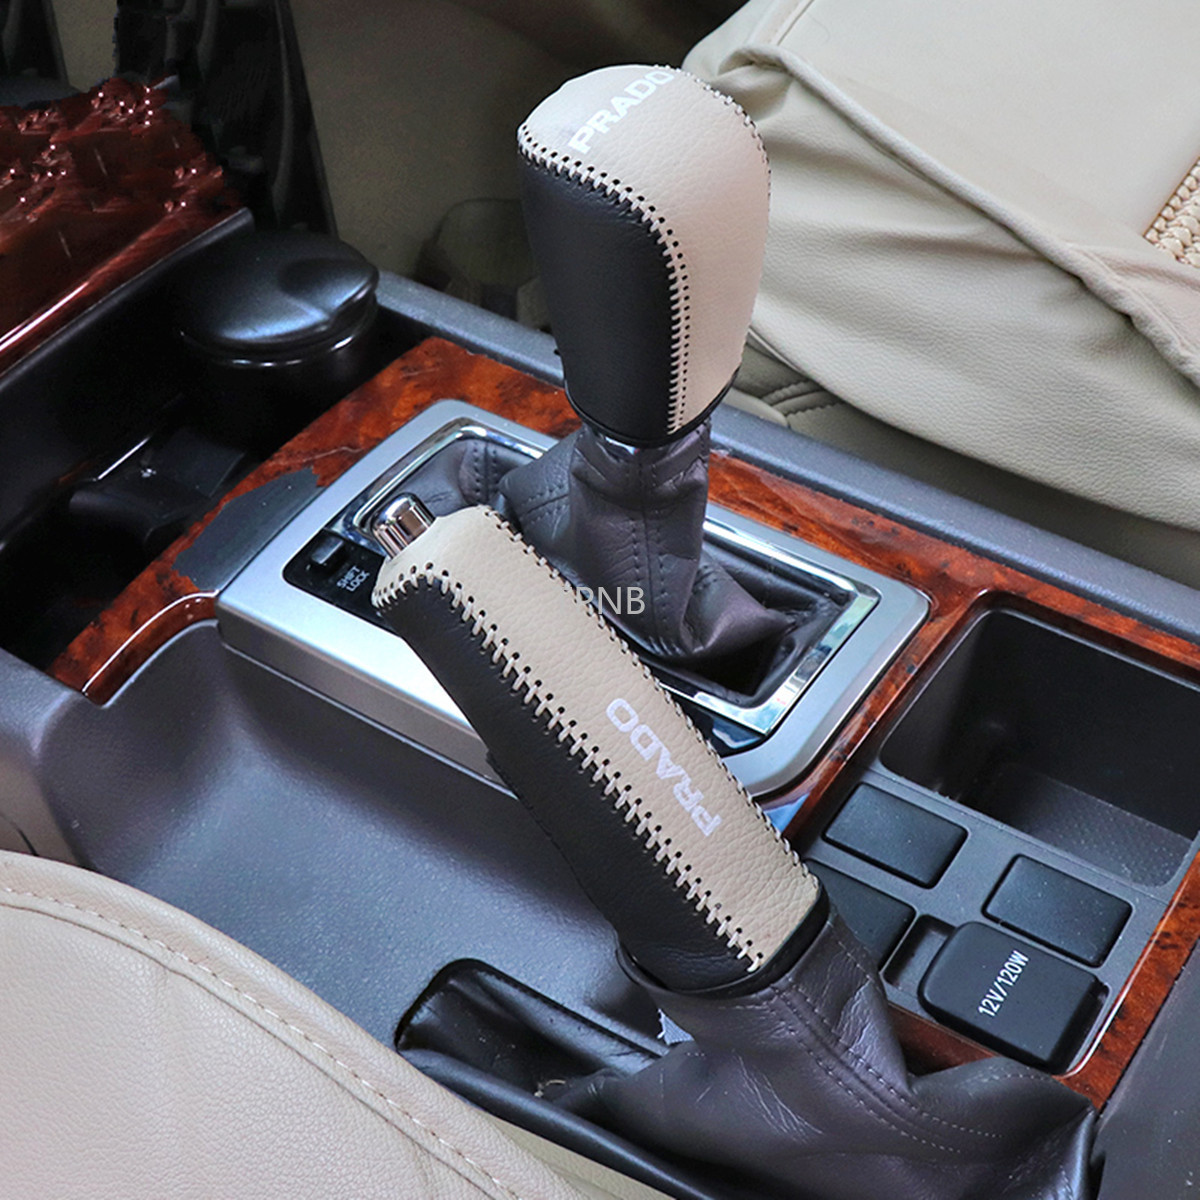 Genuine Leather Gear Shift Knob Hand Brake Cover for <font><b>Toyota</b></font> Land Cruiser Prado <font><b>150</b></font> 2010 2012 2013 2014 2015 2016 2017 2018 image